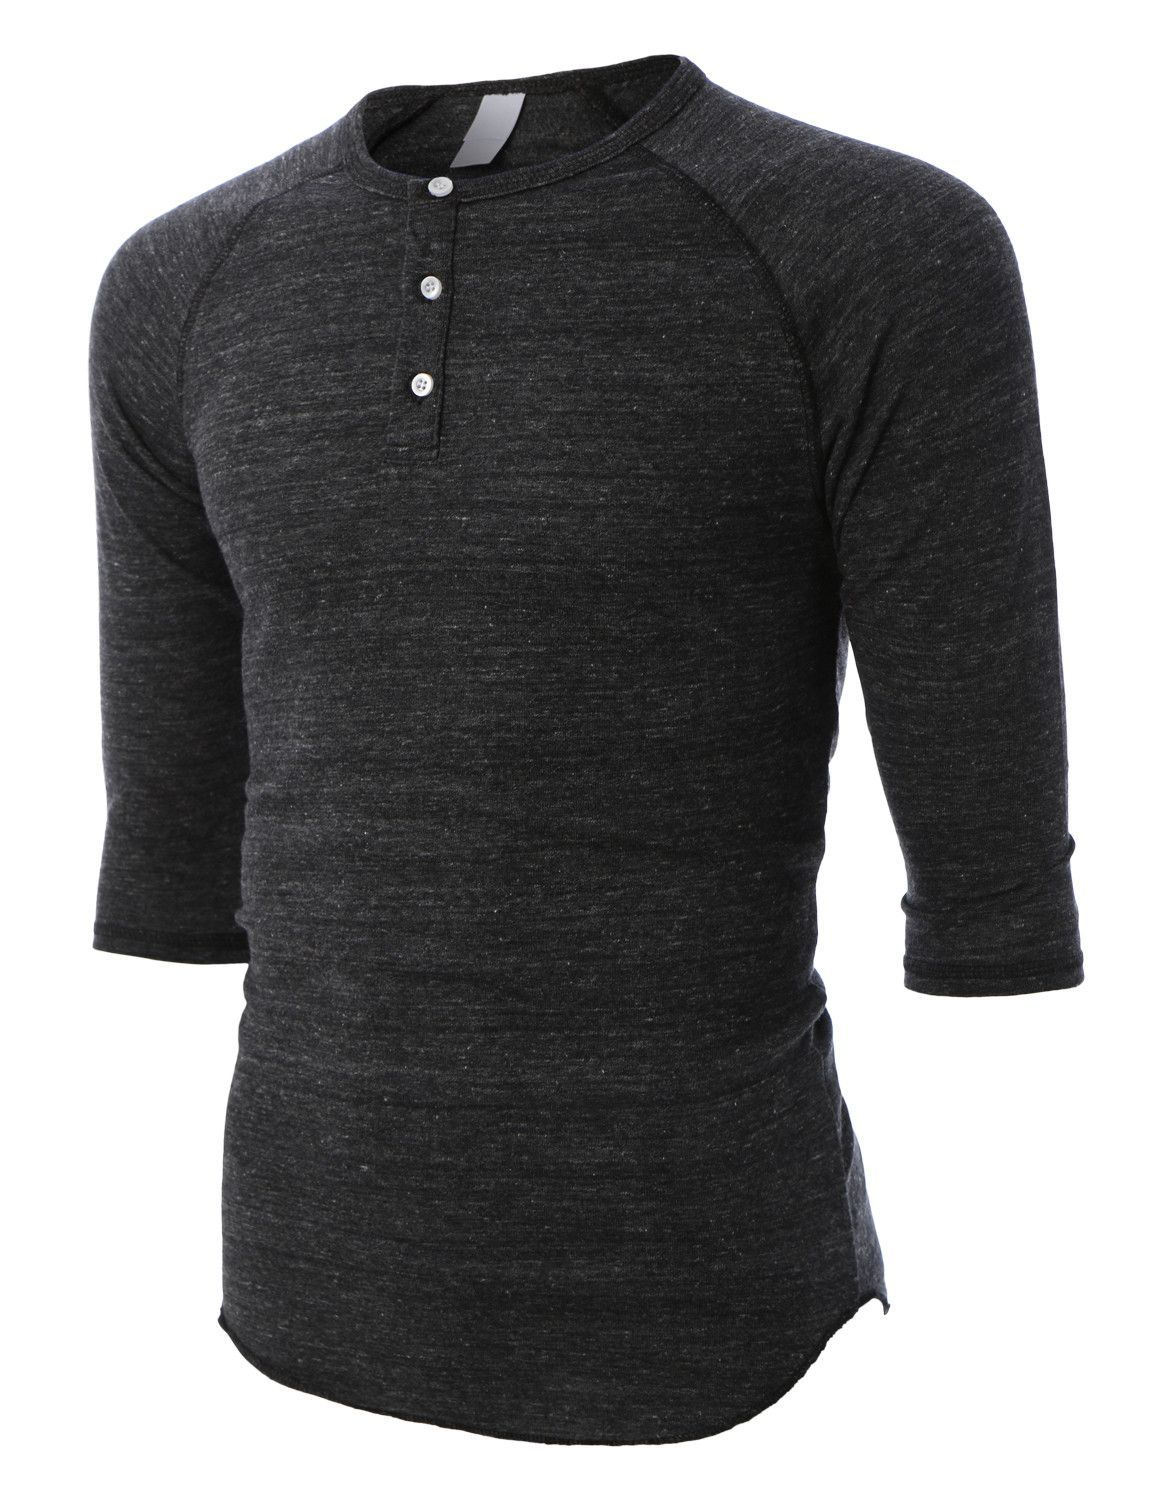 The 3 Best Fitting T Shirts For Men